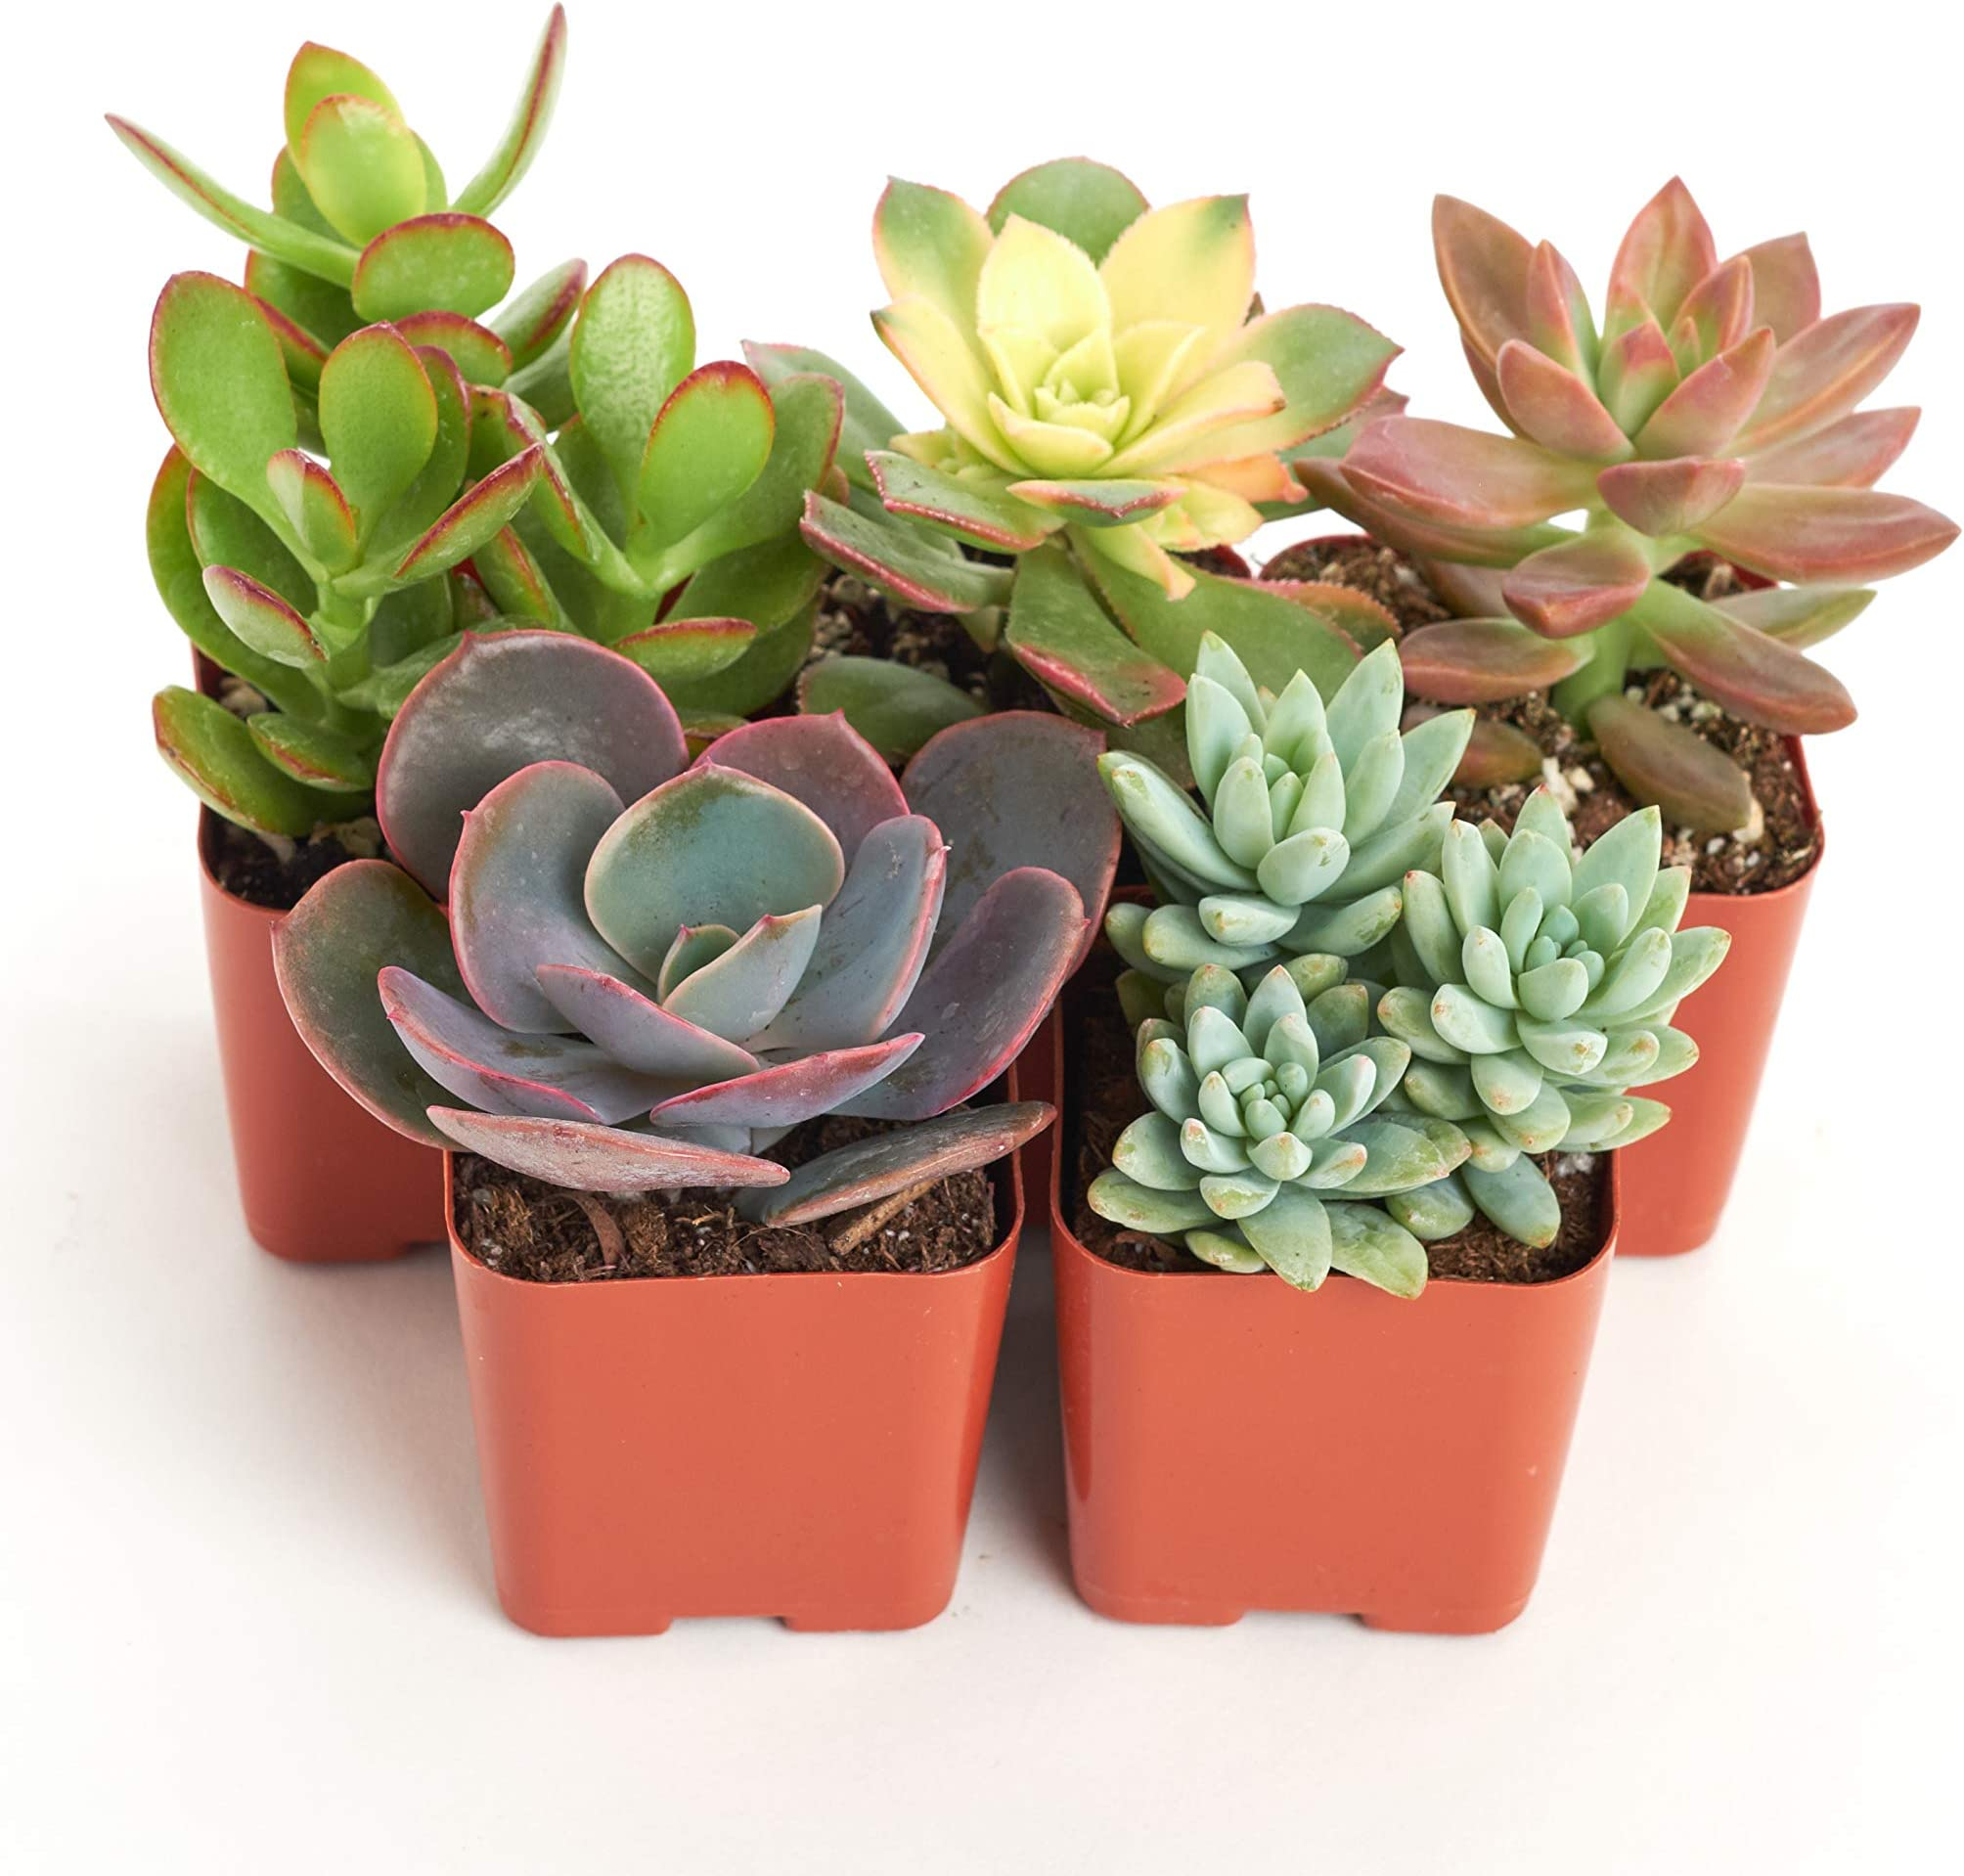 Premium Quality 24 Assorted 2.5 rooted succulents plants